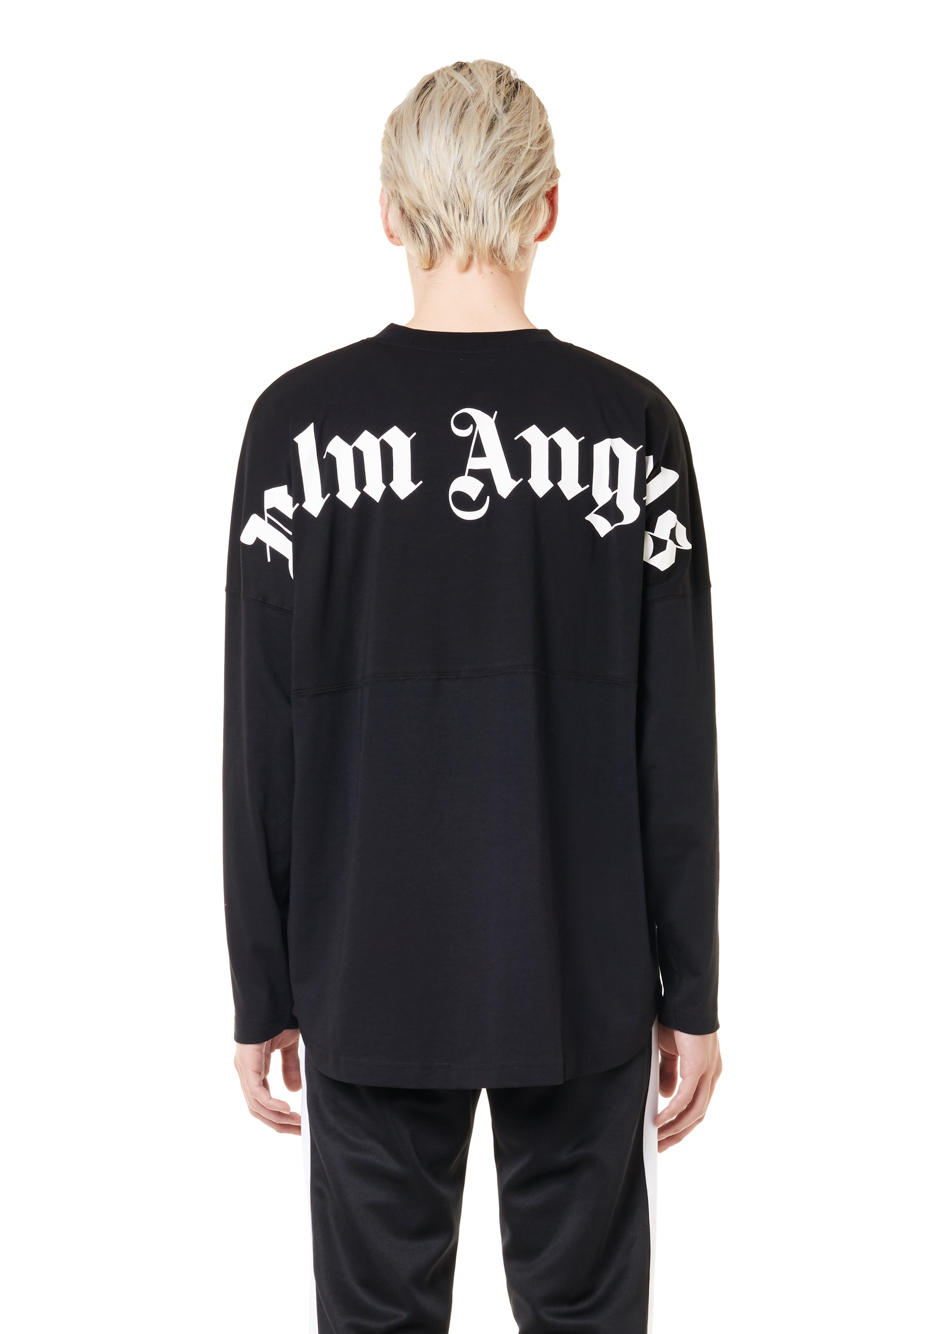 【ワンオクTAKA愛用】☆激レアPALM ANGELS☆LOGO OVER TEE L/S